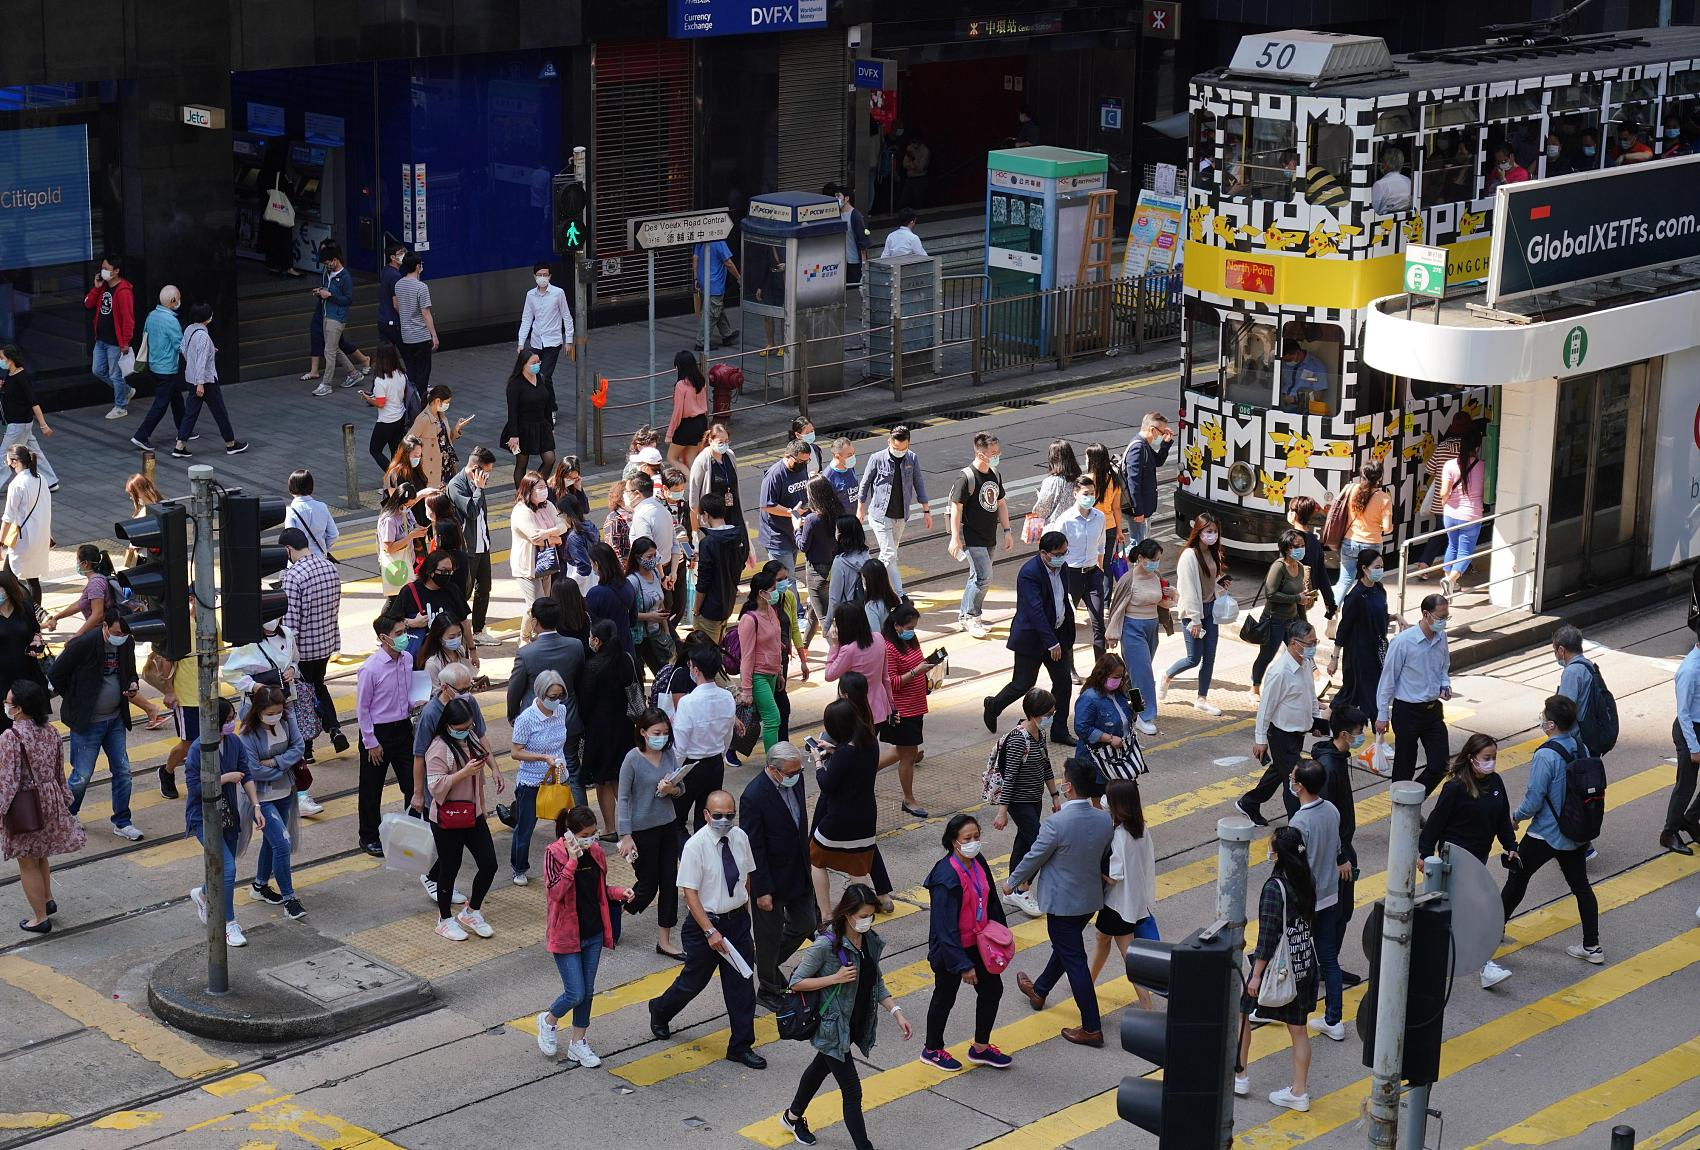 Hong Kong reports 3 new COVID-19 cases with one untraceable